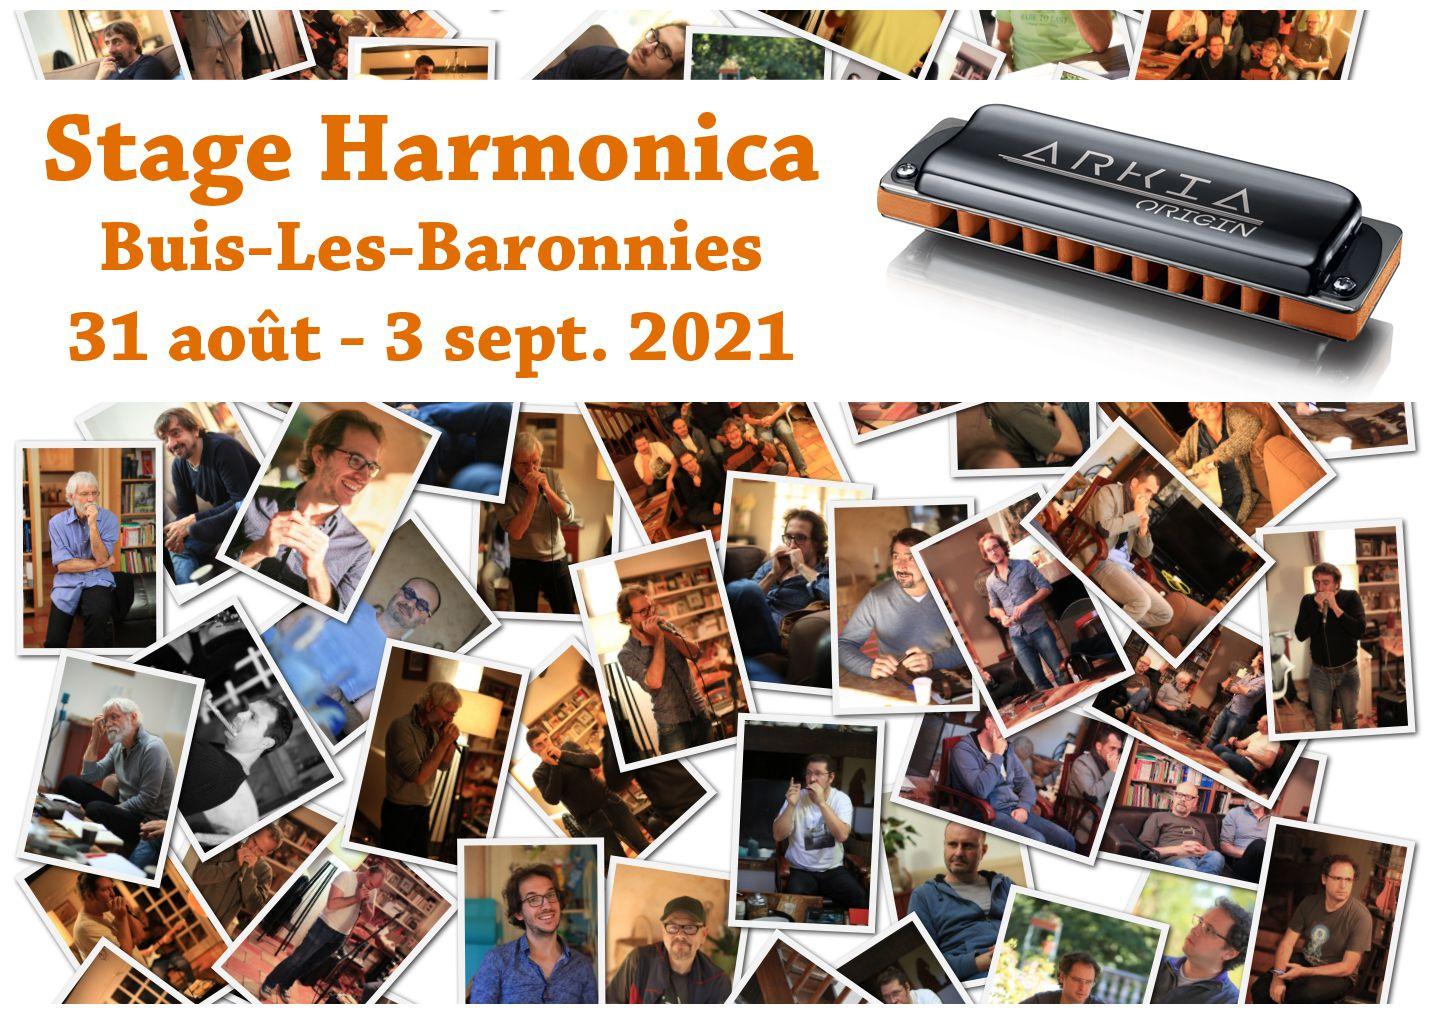 Stage Harmonica Buis-Les-Baronnies